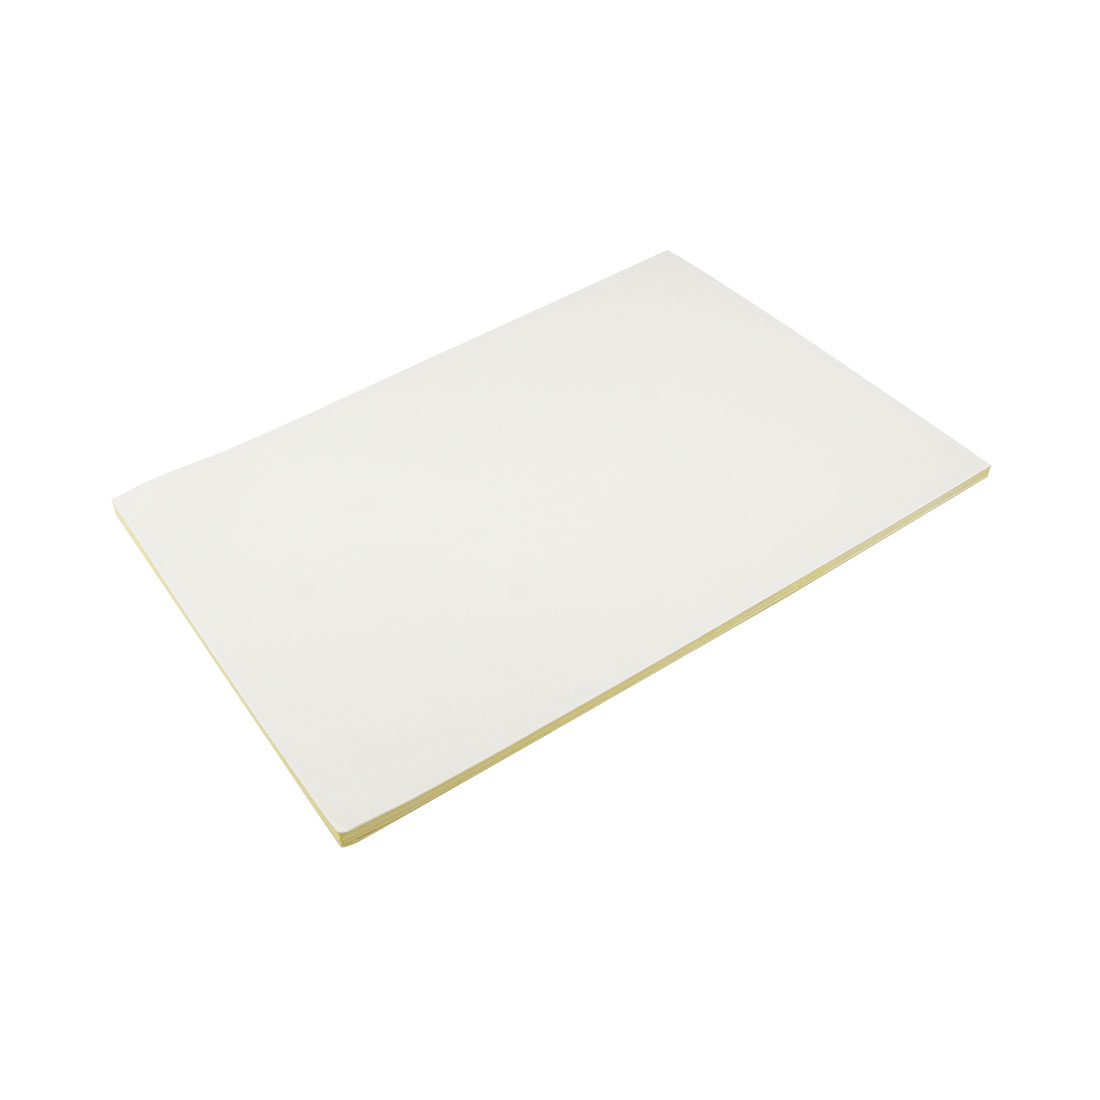 """Home White Manual Dust Removal Vinyl Sticky Paper 48 Sheets 9.5"""" x 13"""""""